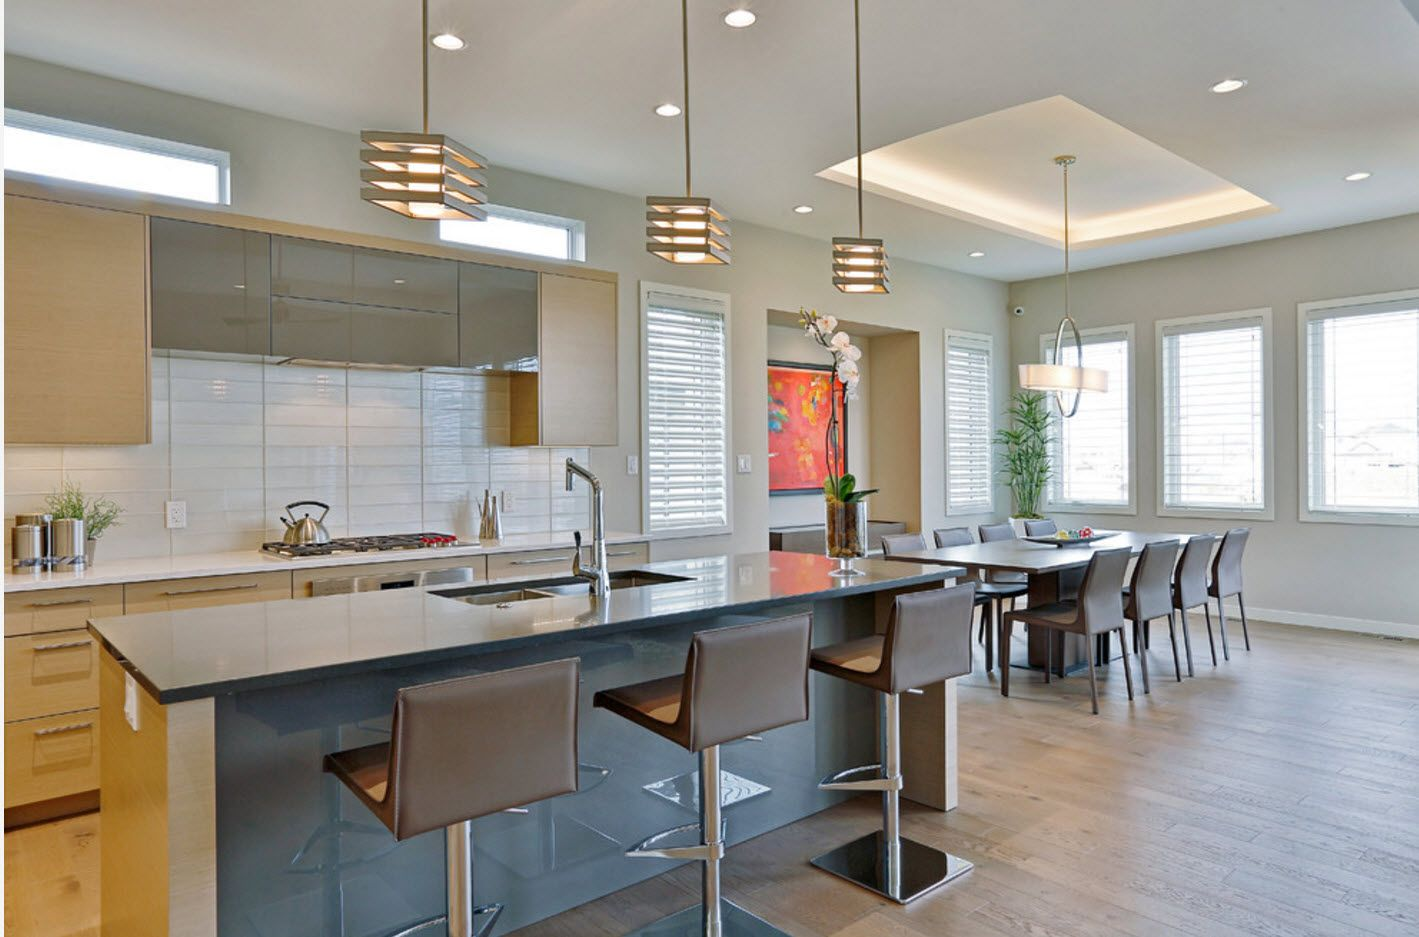 Strict lines of the modern hi-tech kitchen interior in tender pastel colors